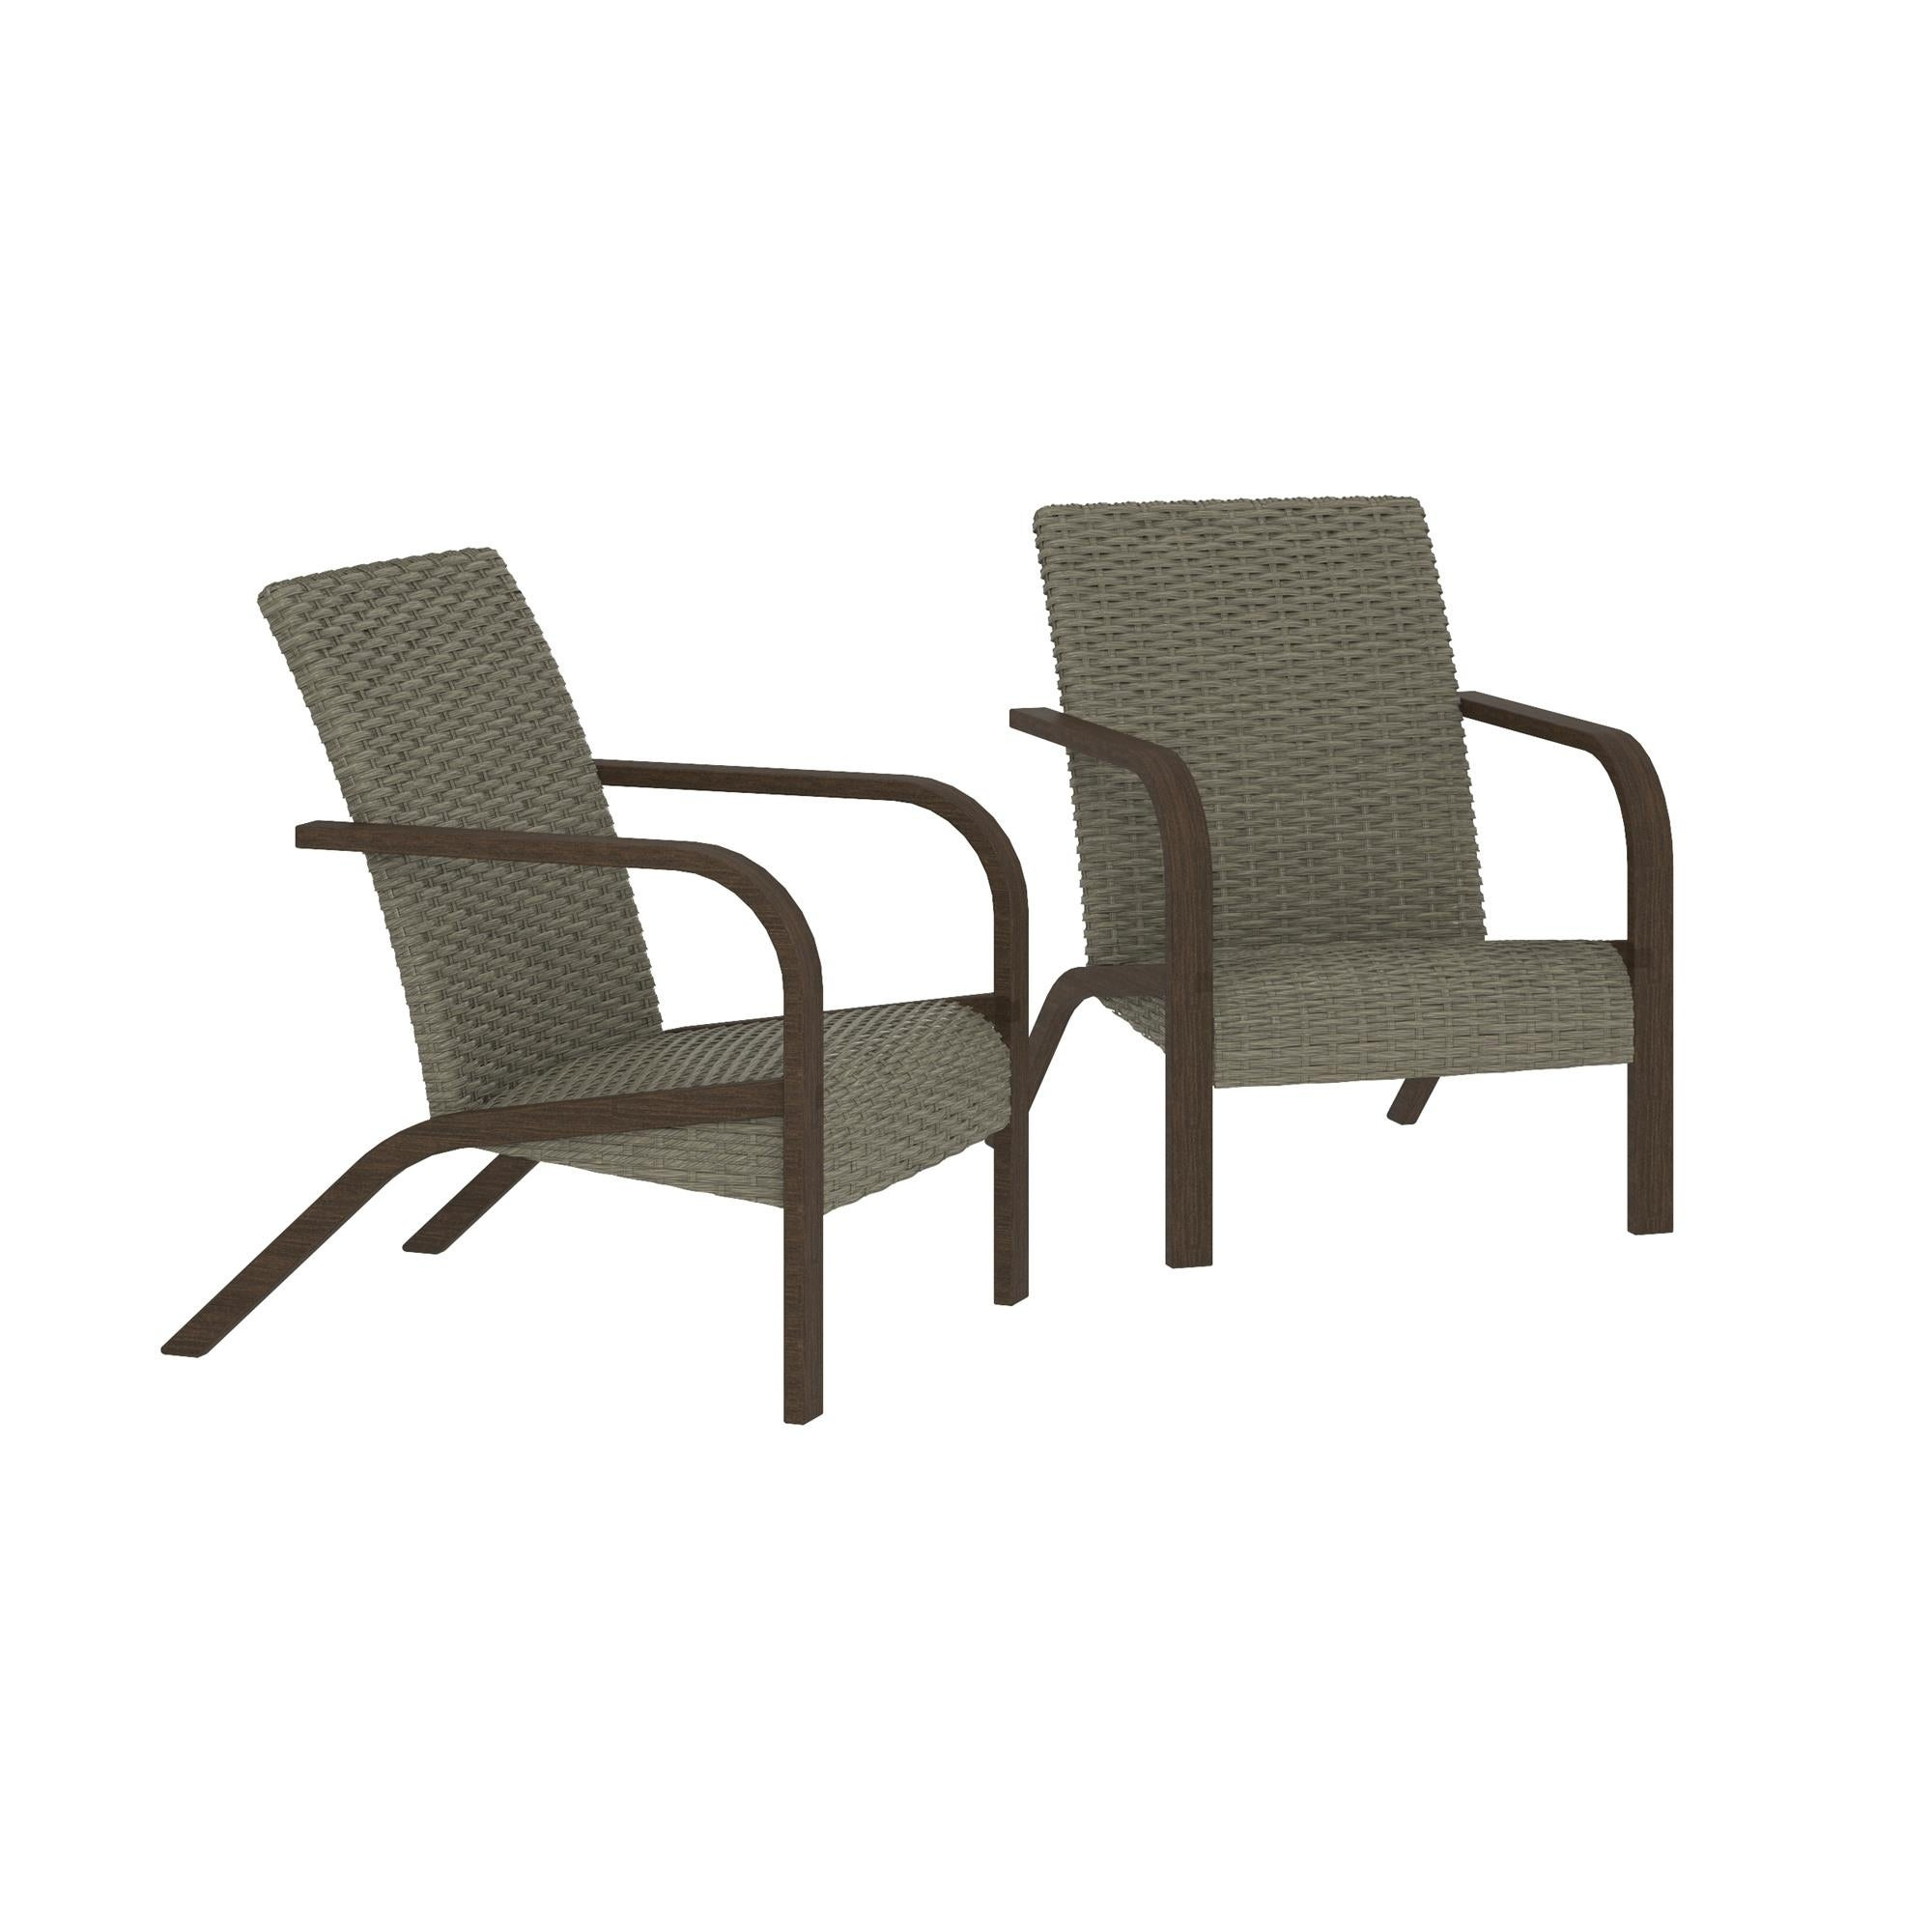 Peachy Cosco Outdoor Furniture Villa Park Smartdry Patio Lounge Chairs 2 Pack Download Free Architecture Designs Barepgrimeyleaguecom